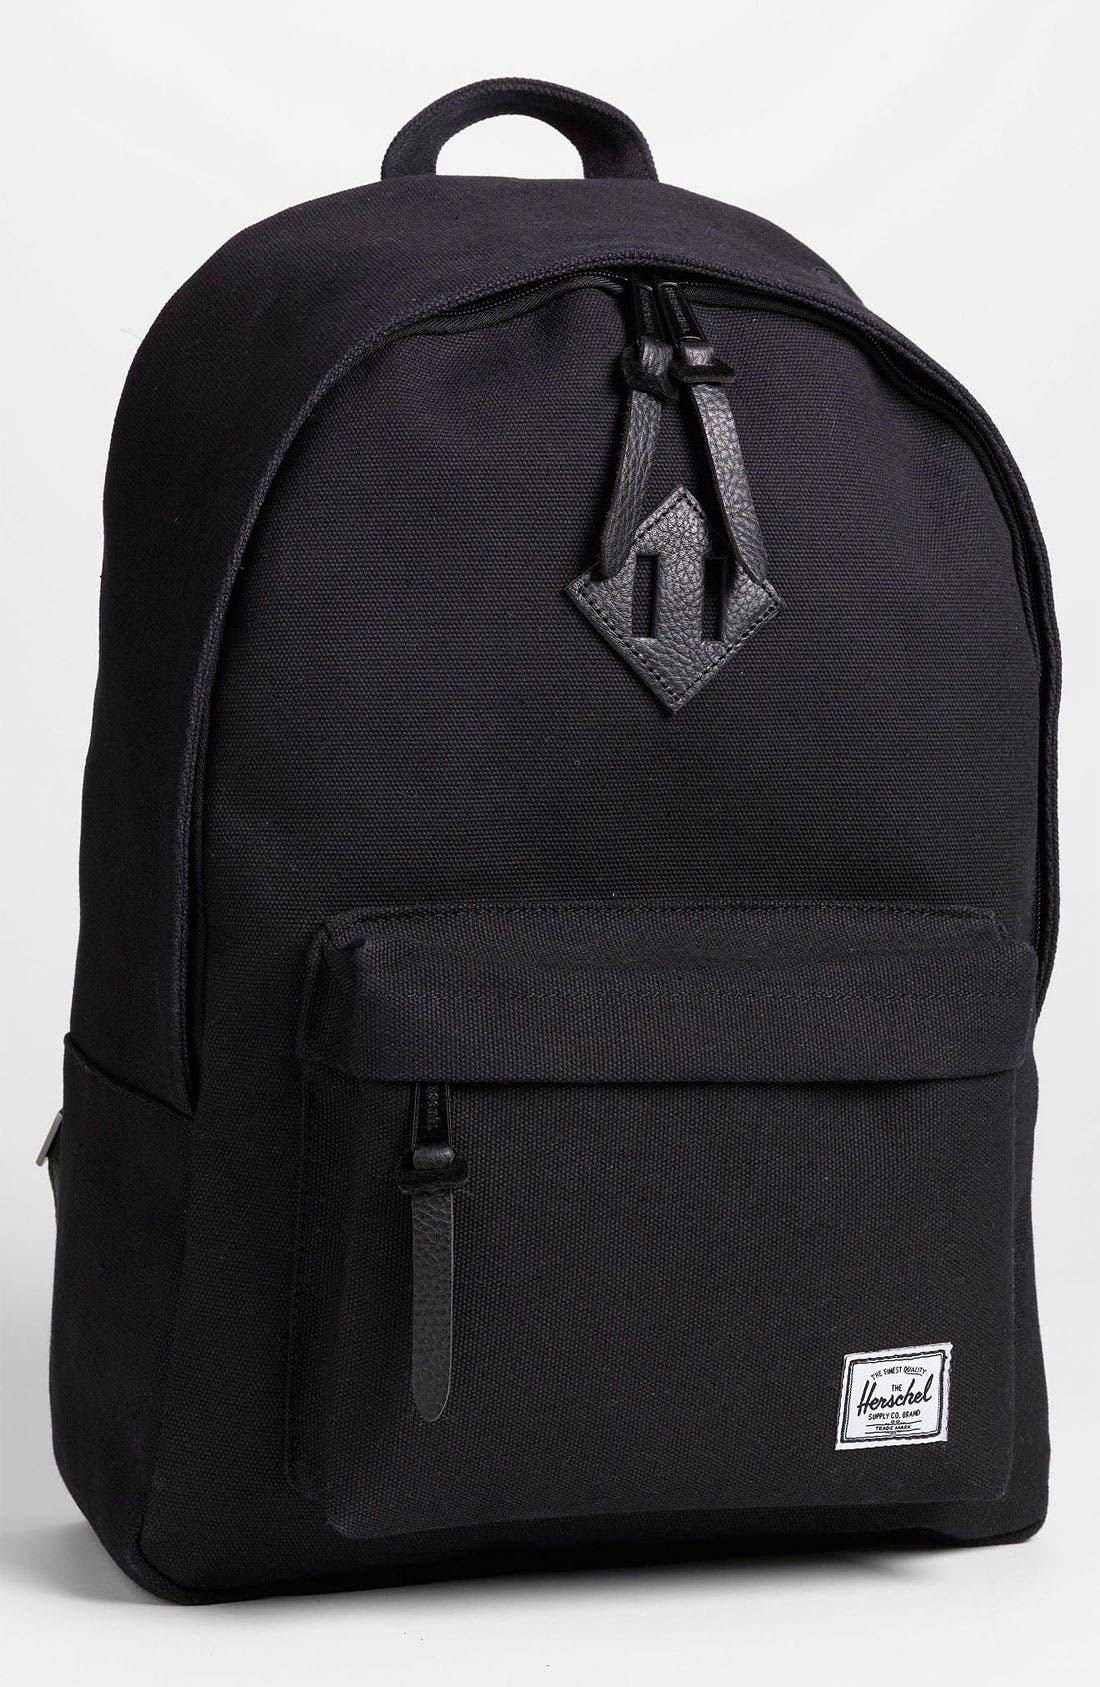 Alternate Image 1 Selected - Herschel Supply Co. 'Woodlands' Backpack